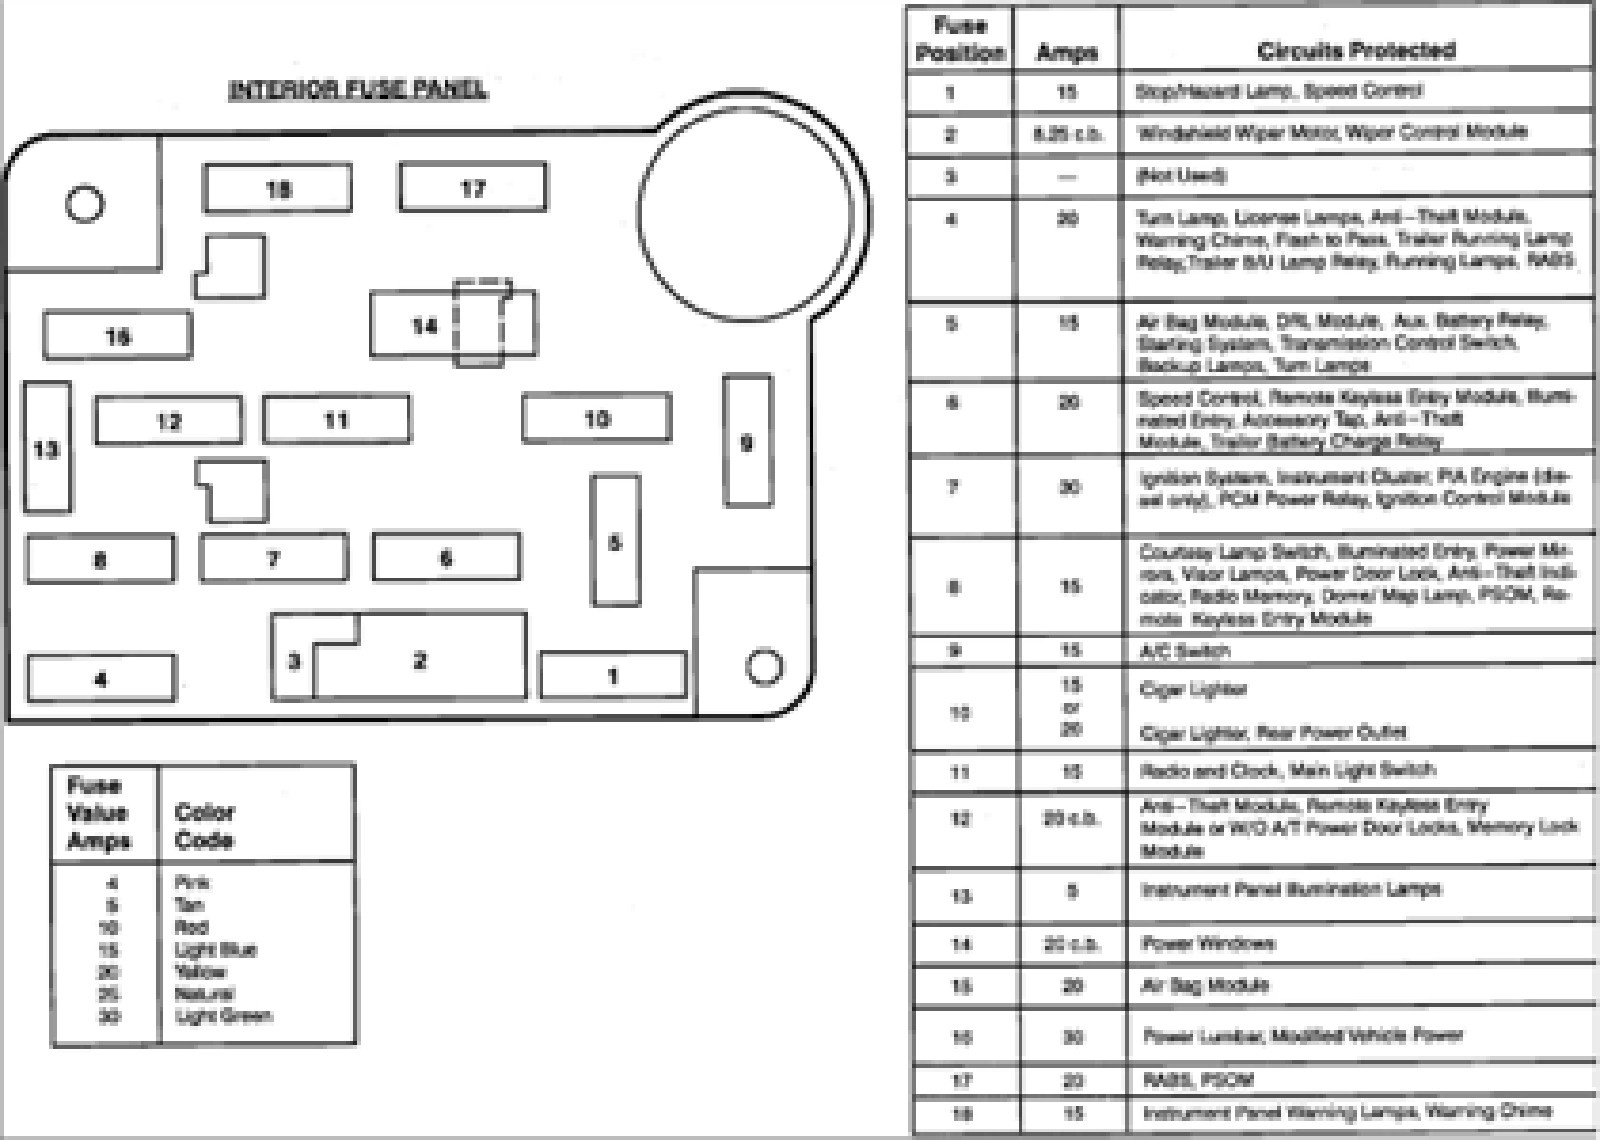 ford e 150 questions fuse diagram for a 1993 ford econoline van rh cargurus com 2001 ford f150 fuse box layout 2001 ford f150 fuse box location